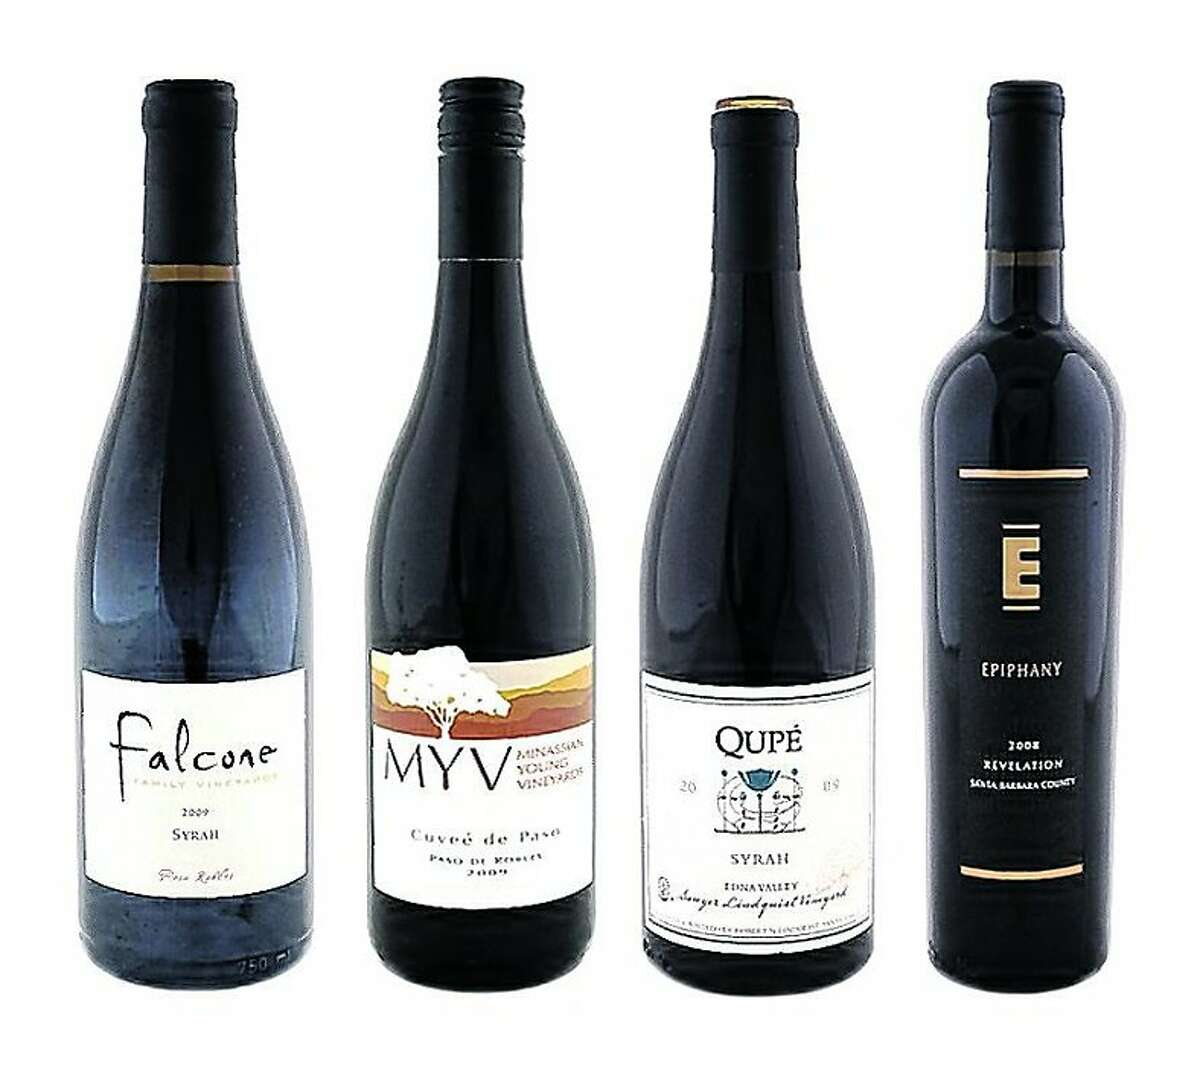 From left: 2009 Falcone Family Vineyards Paso Robles Syrah; 2009 Minassian Young Cuvee de Paso Paso Robles Red; 2009 Qupé Sawyer Lindquist Vineyard Edna Valley Syrah; 2008 Epiphany Cellars Revelation Santa Barbara County Red